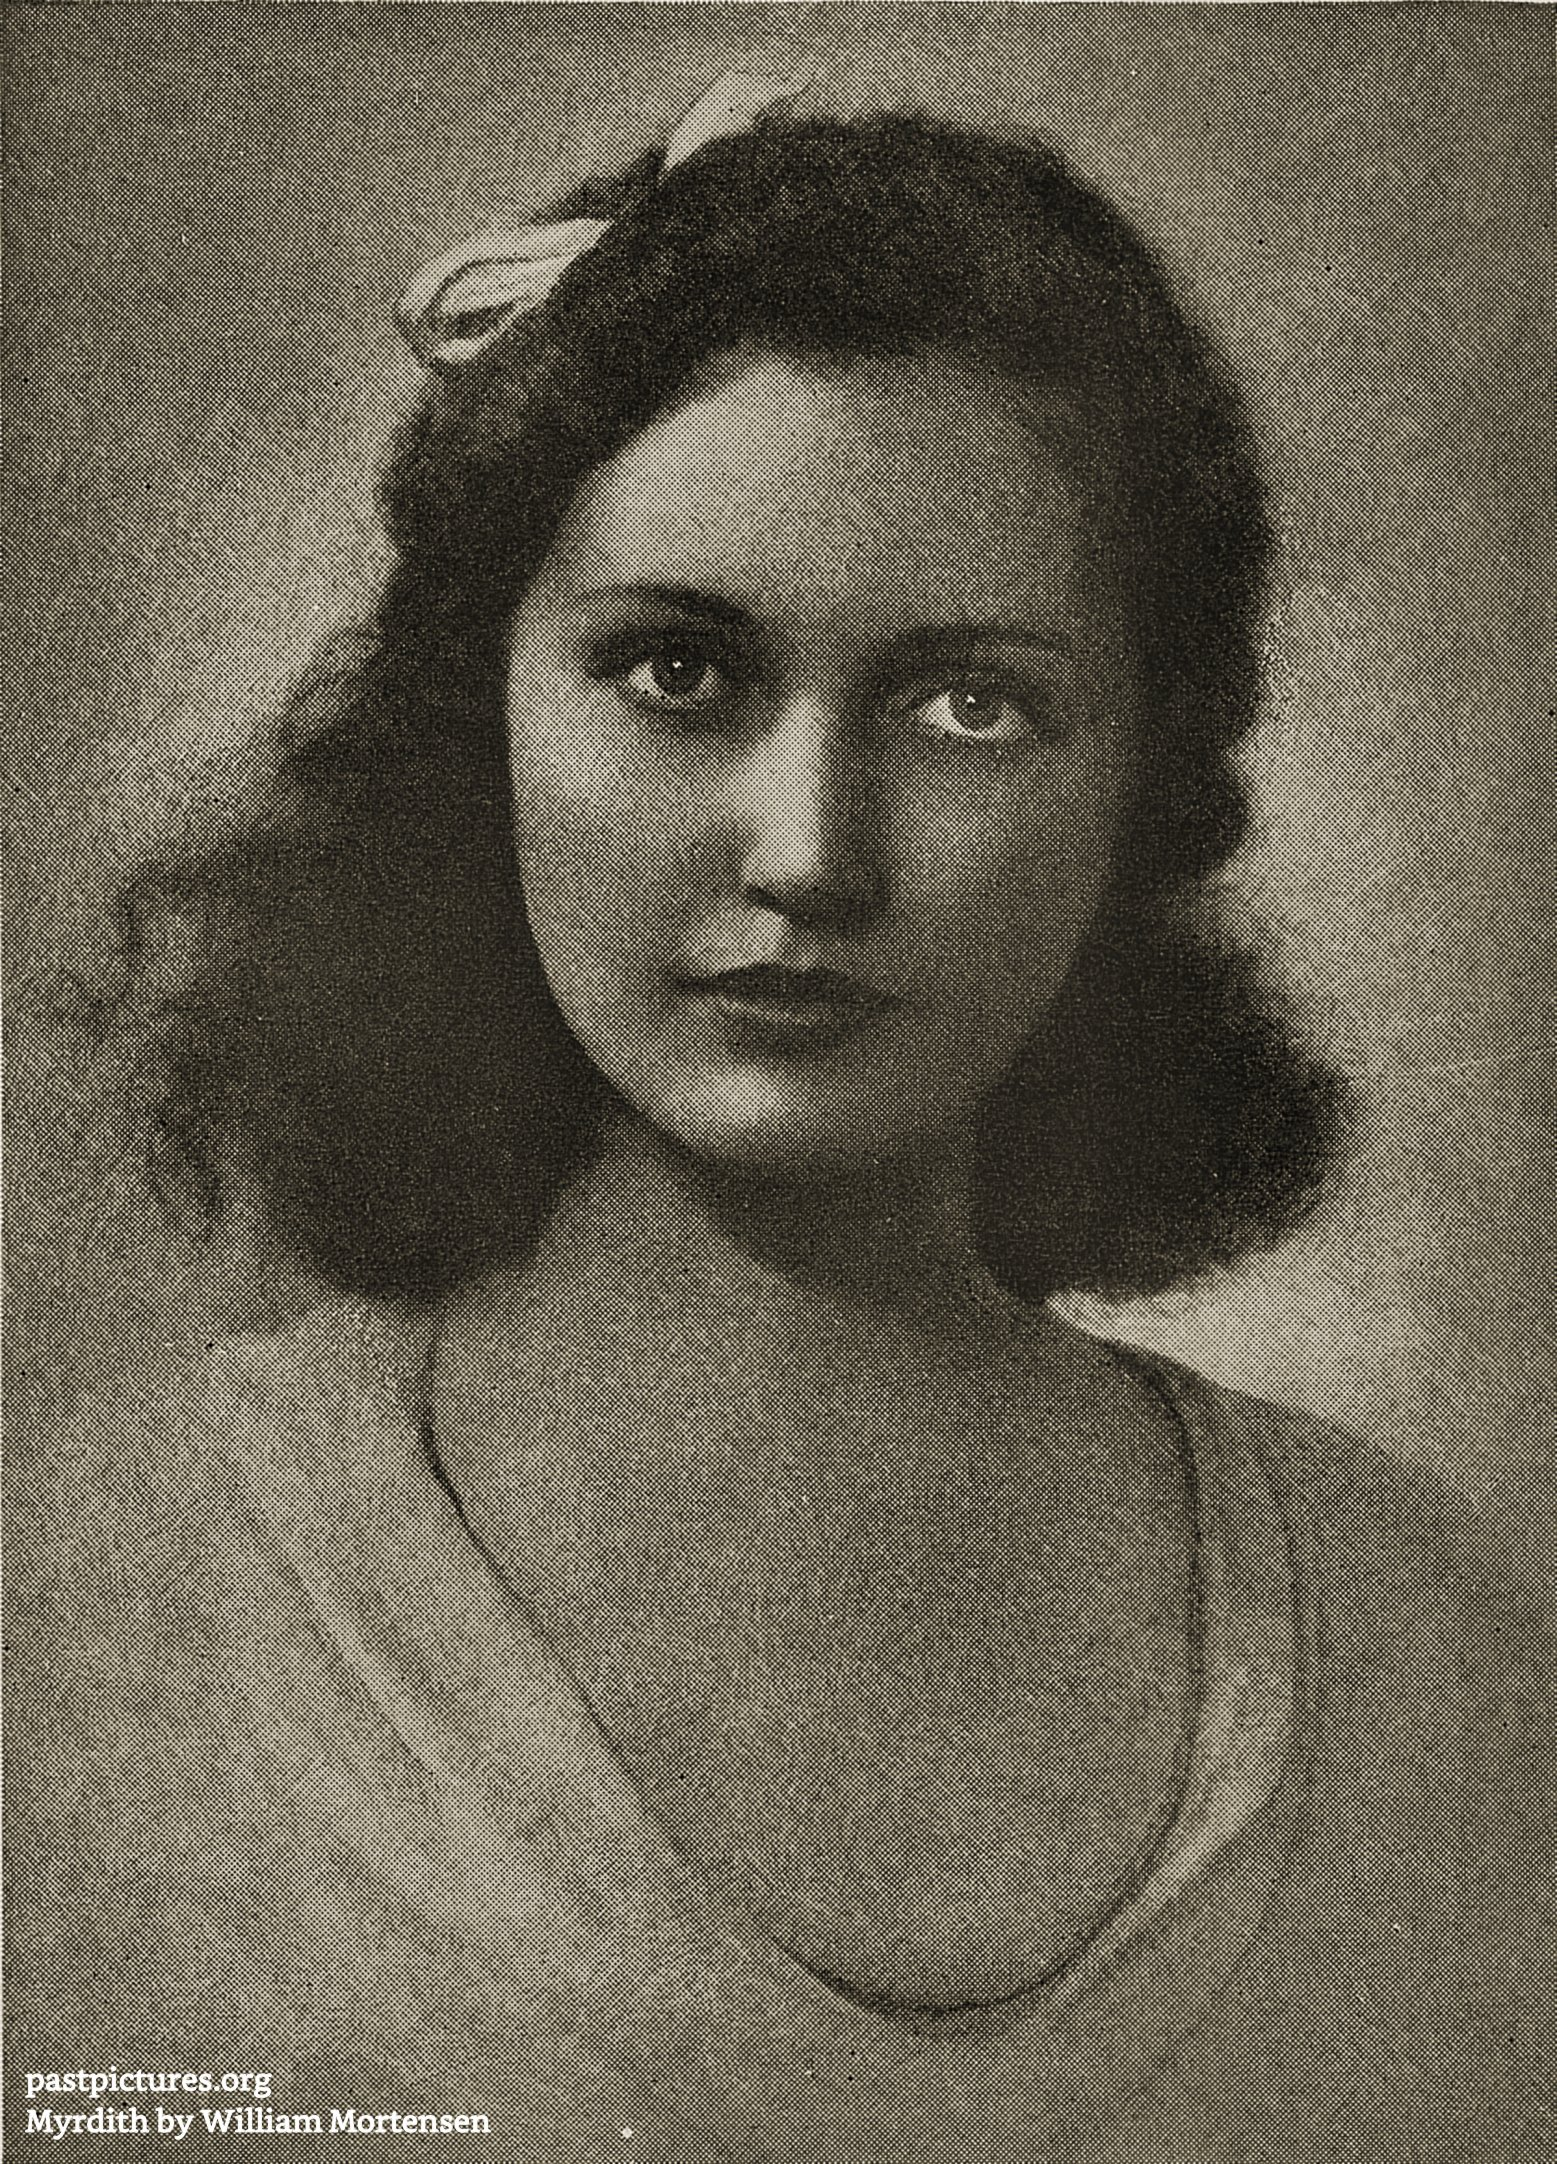 Myrdith by William Mortensen about 1937